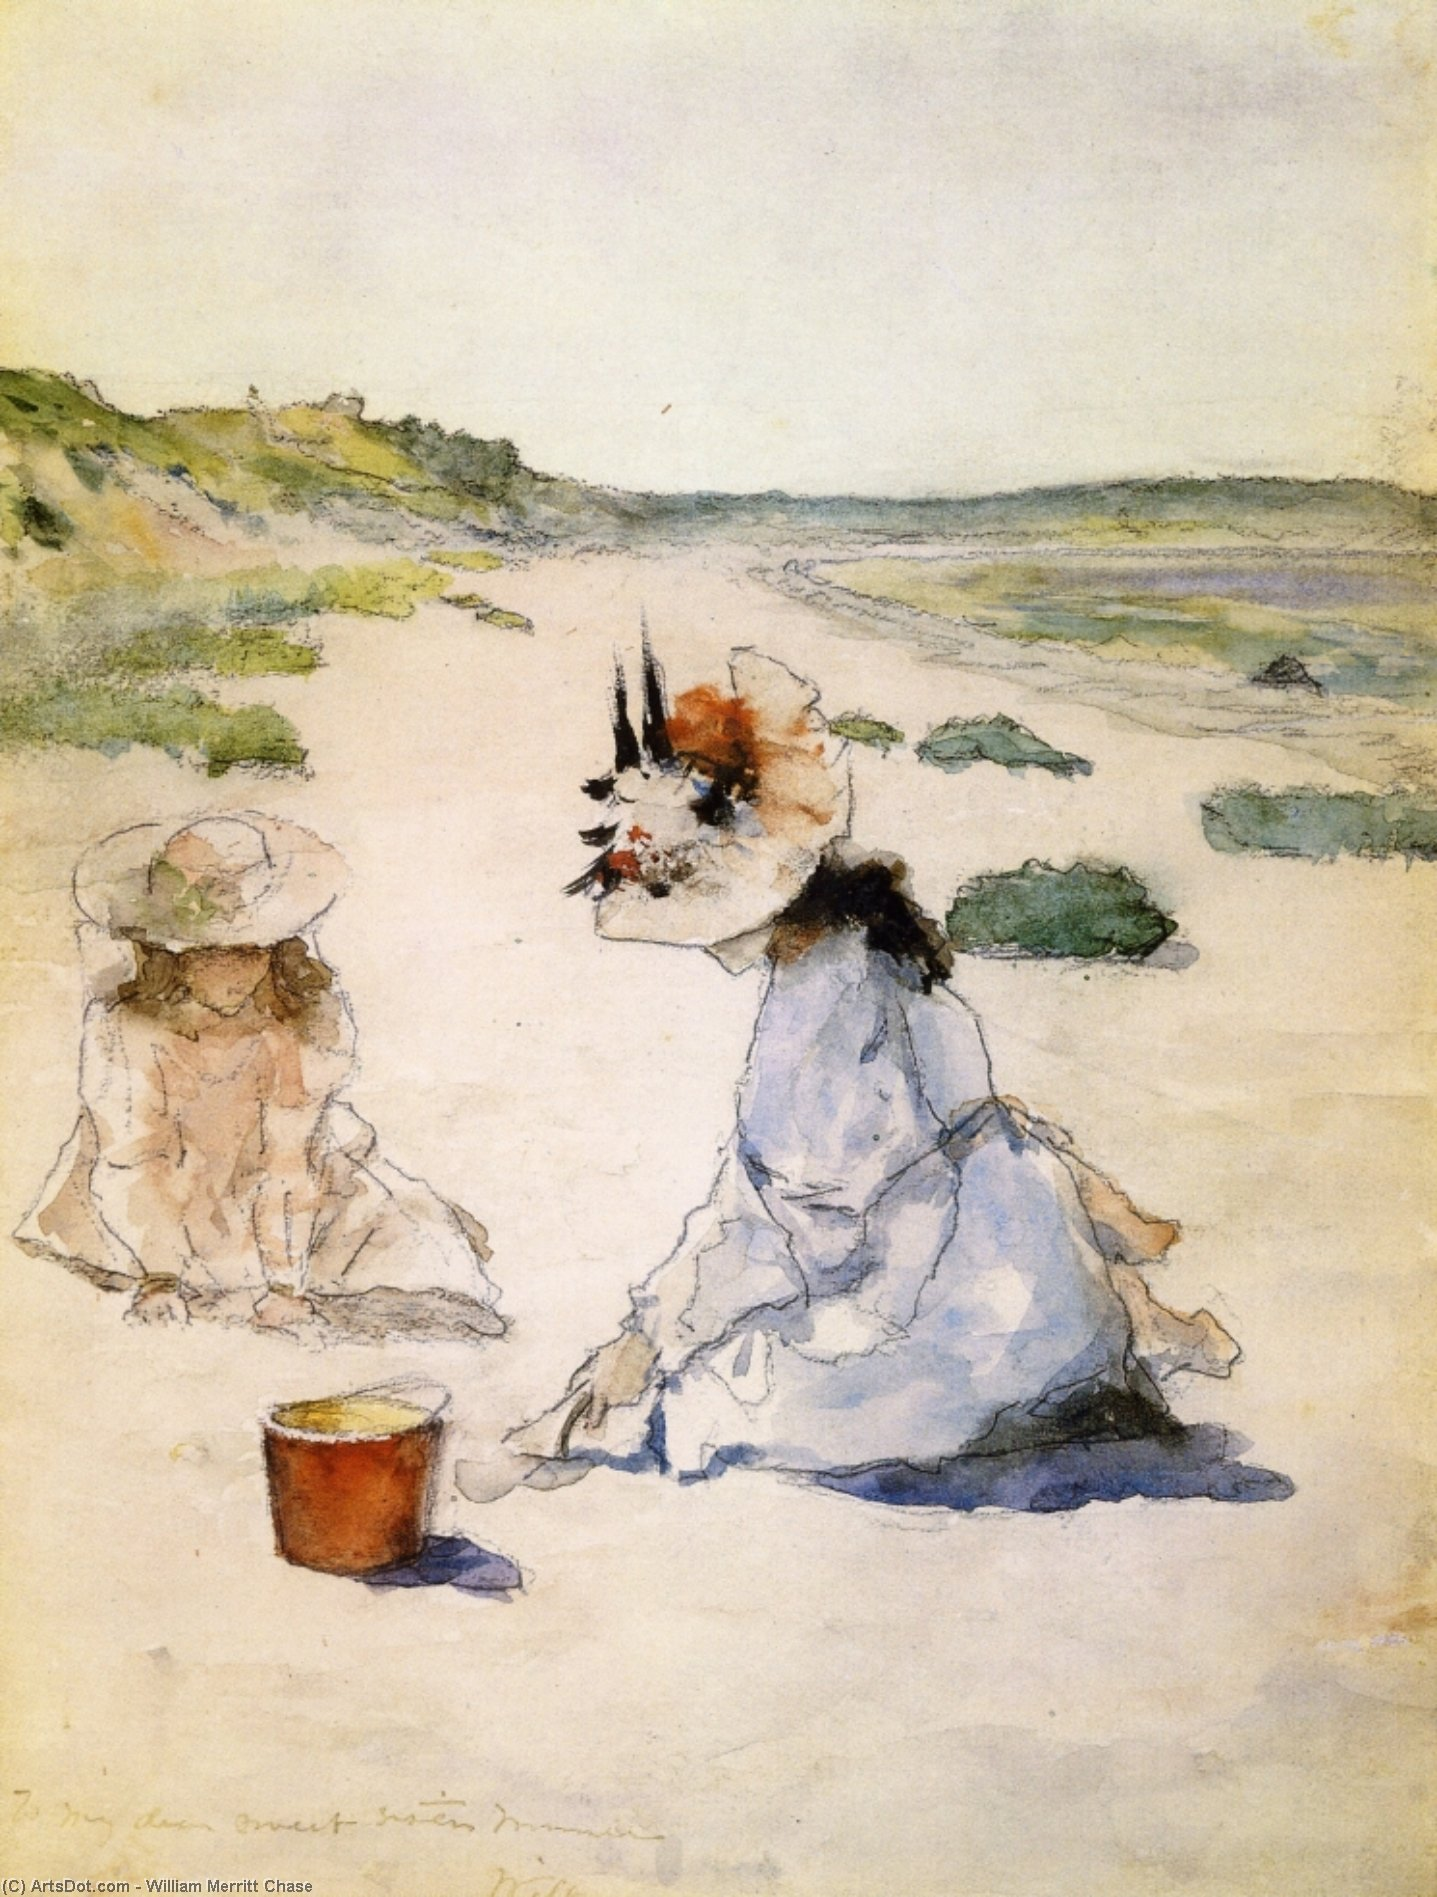 On the Beach, Shinnecock, Watercolour by William Merritt Chase (1849-1916, United States)